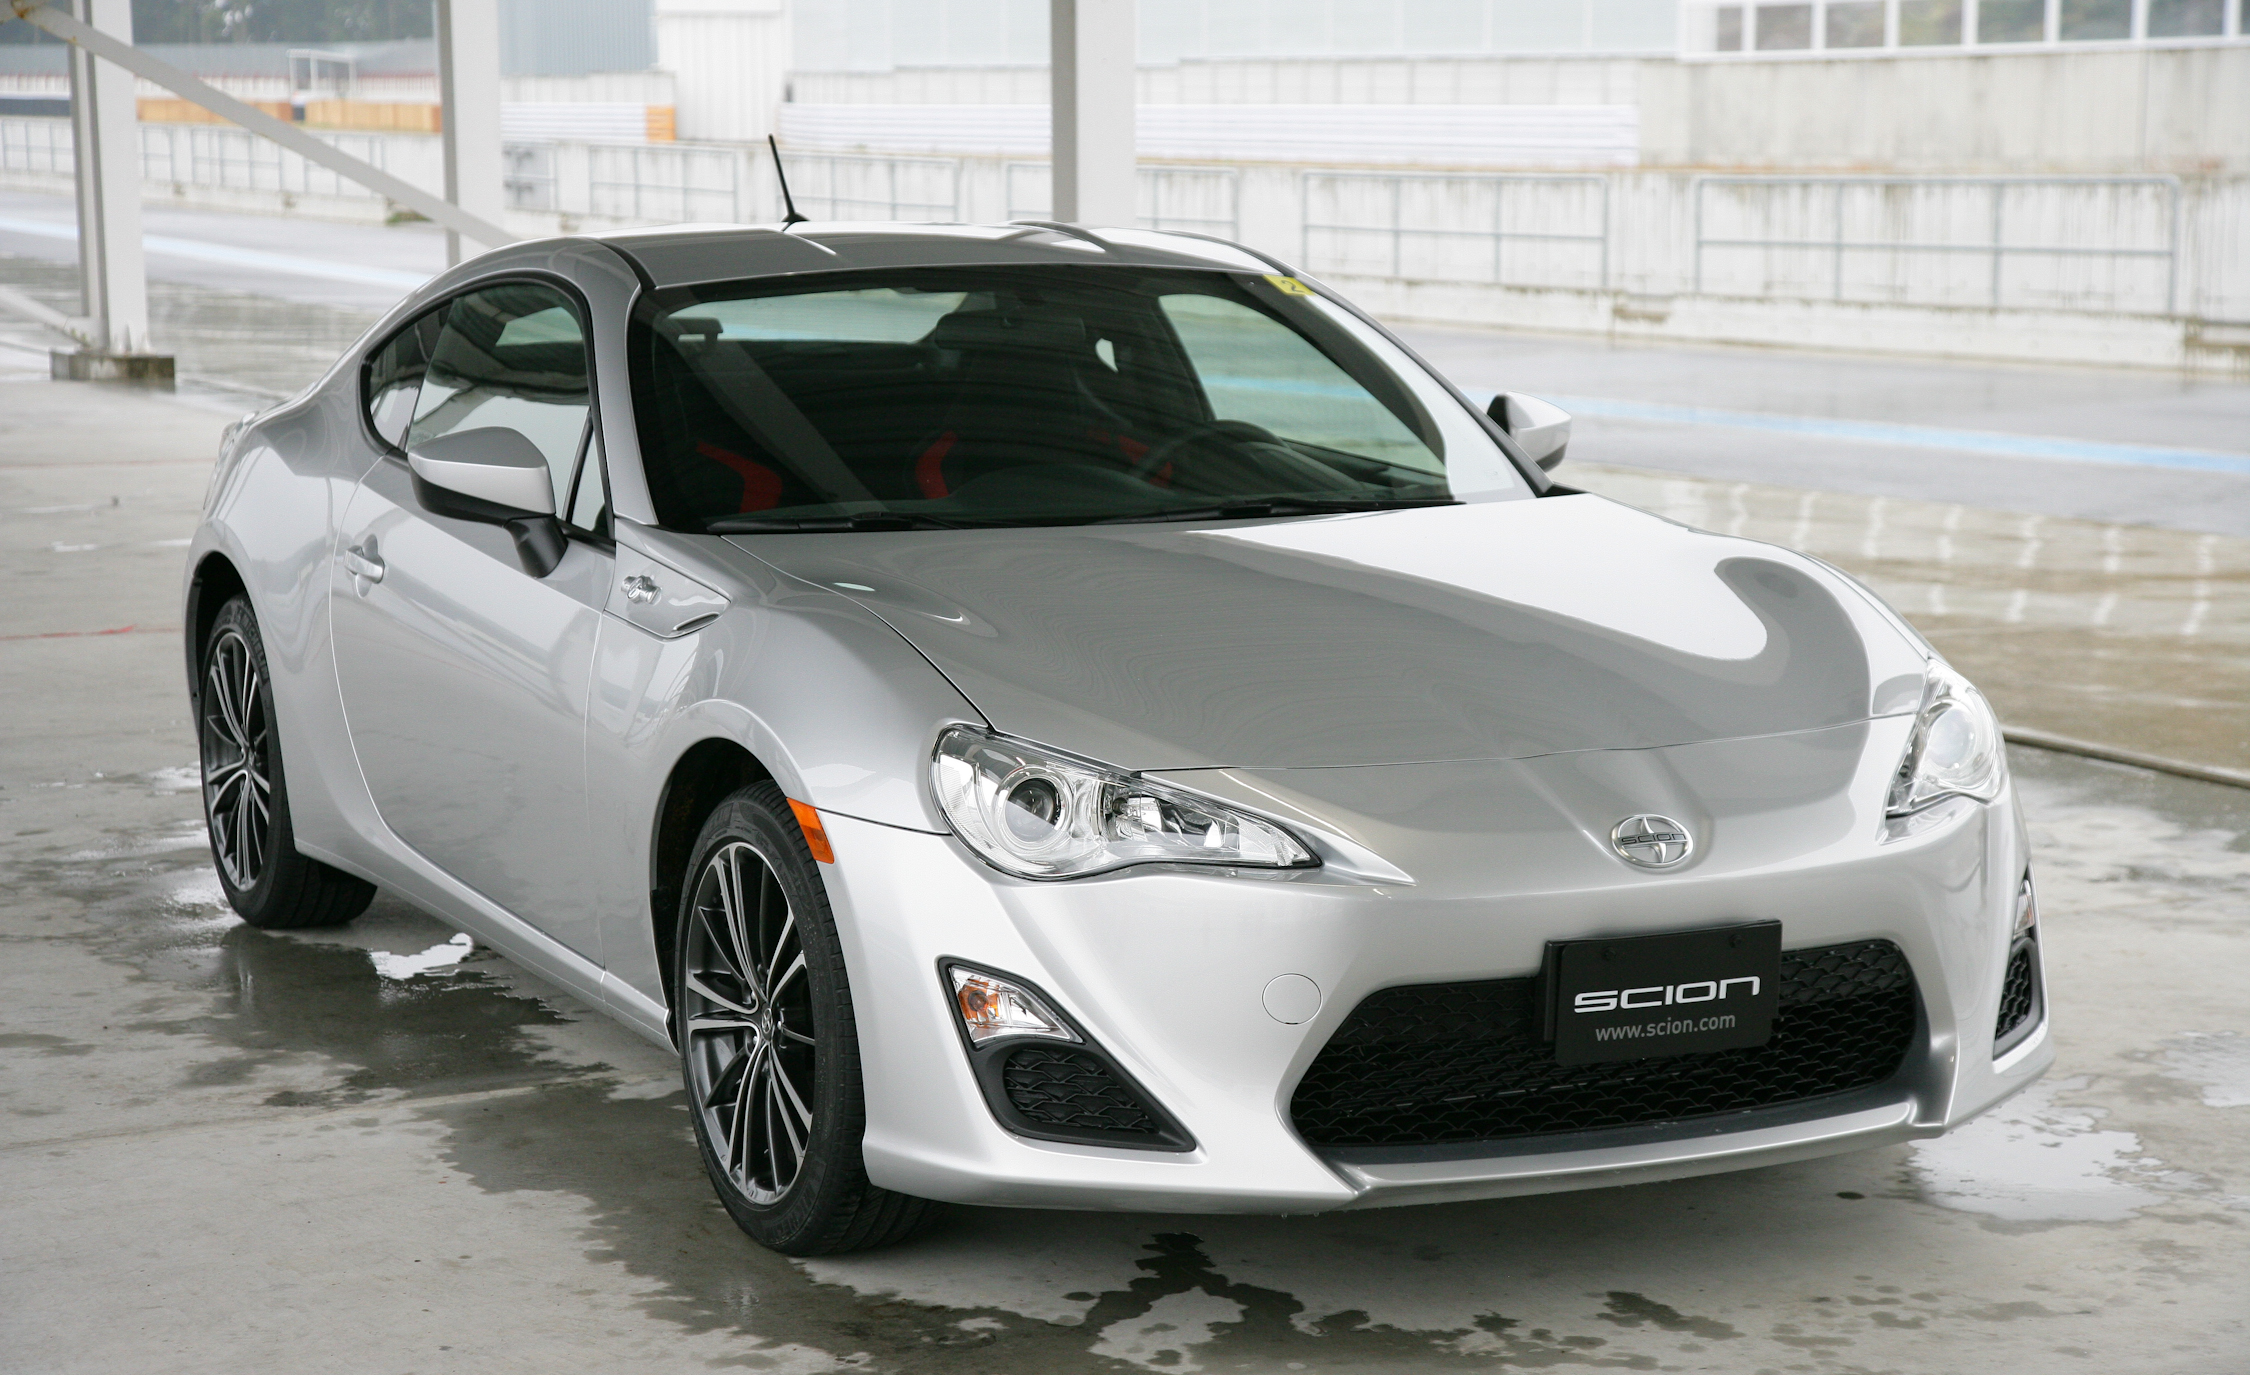 2013 Scion FR S Exterior (Photo 5 of 47)